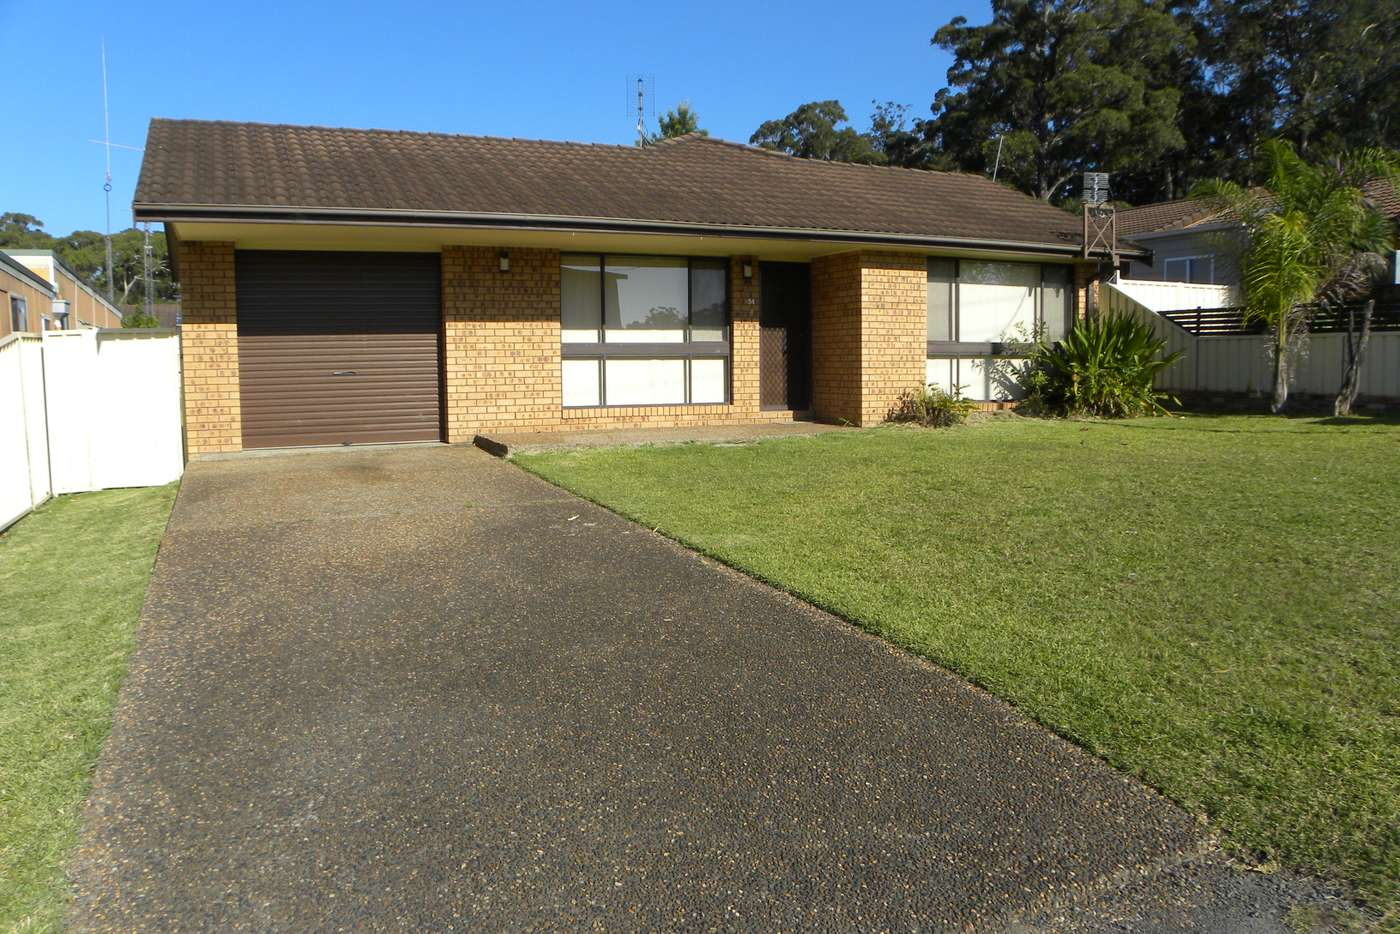 Main view of Homely house listing, 54 Flamingo Ave, Sanctuary Point NSW 2540